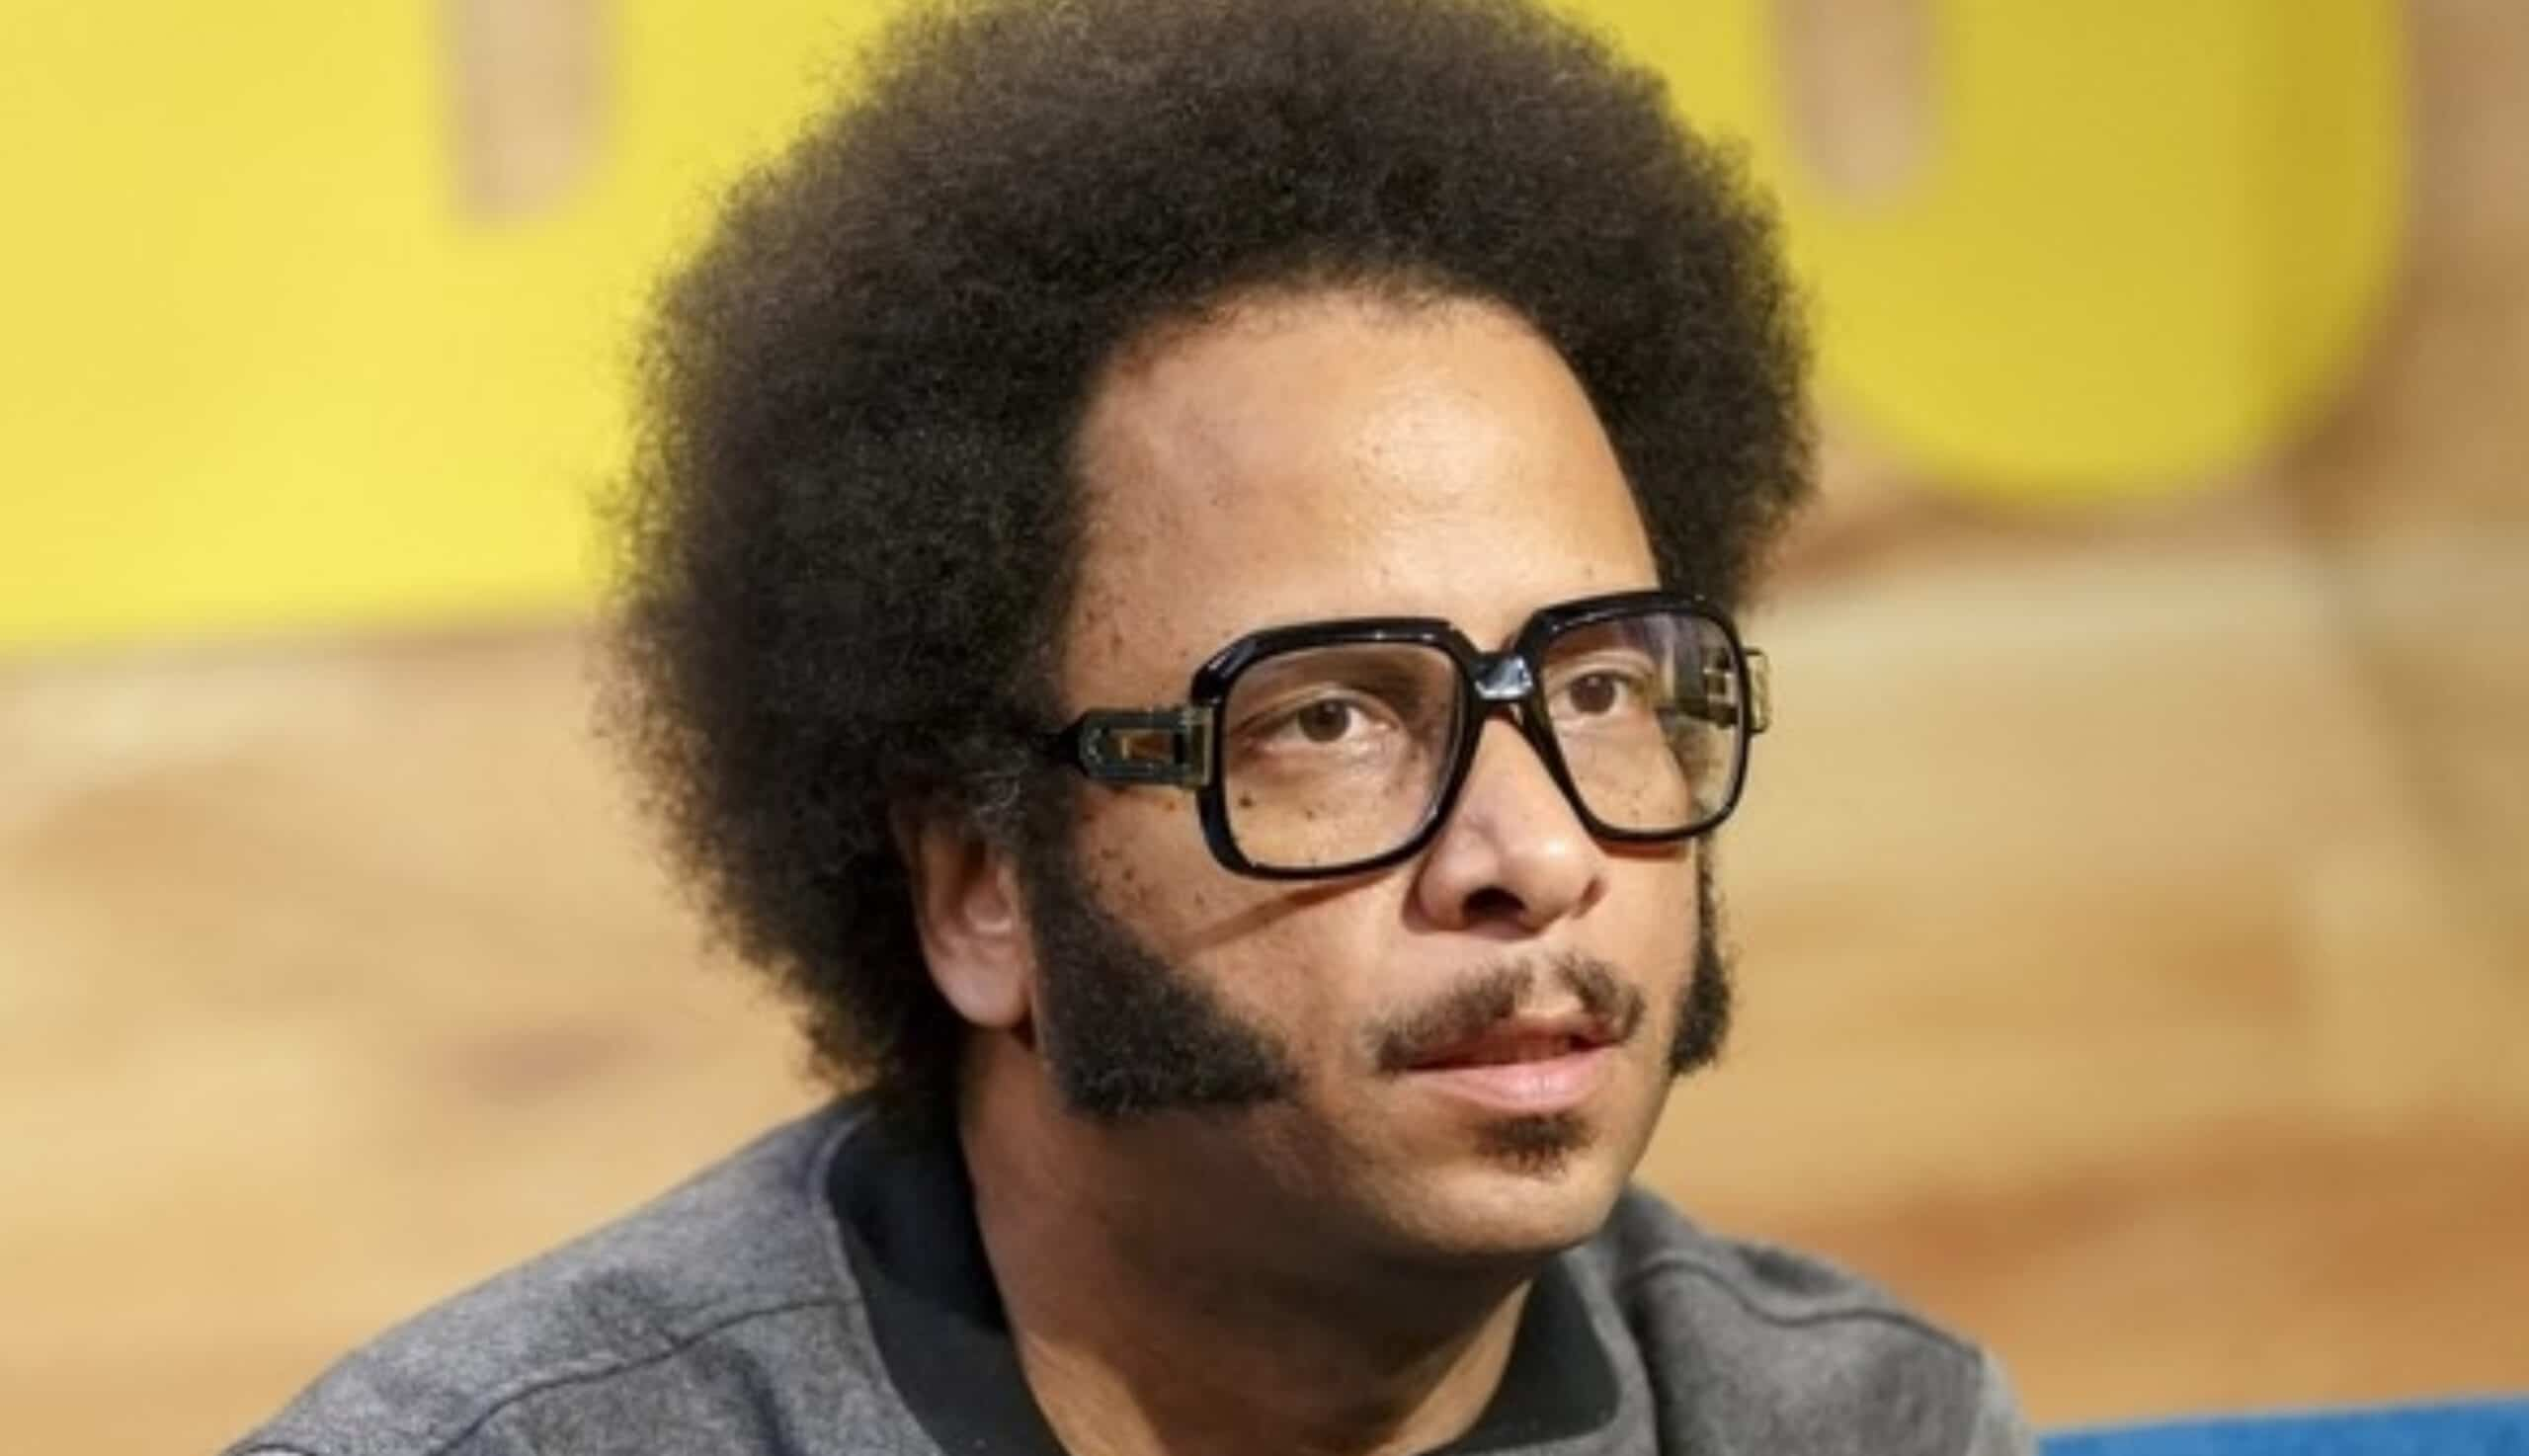 boots riley getty images